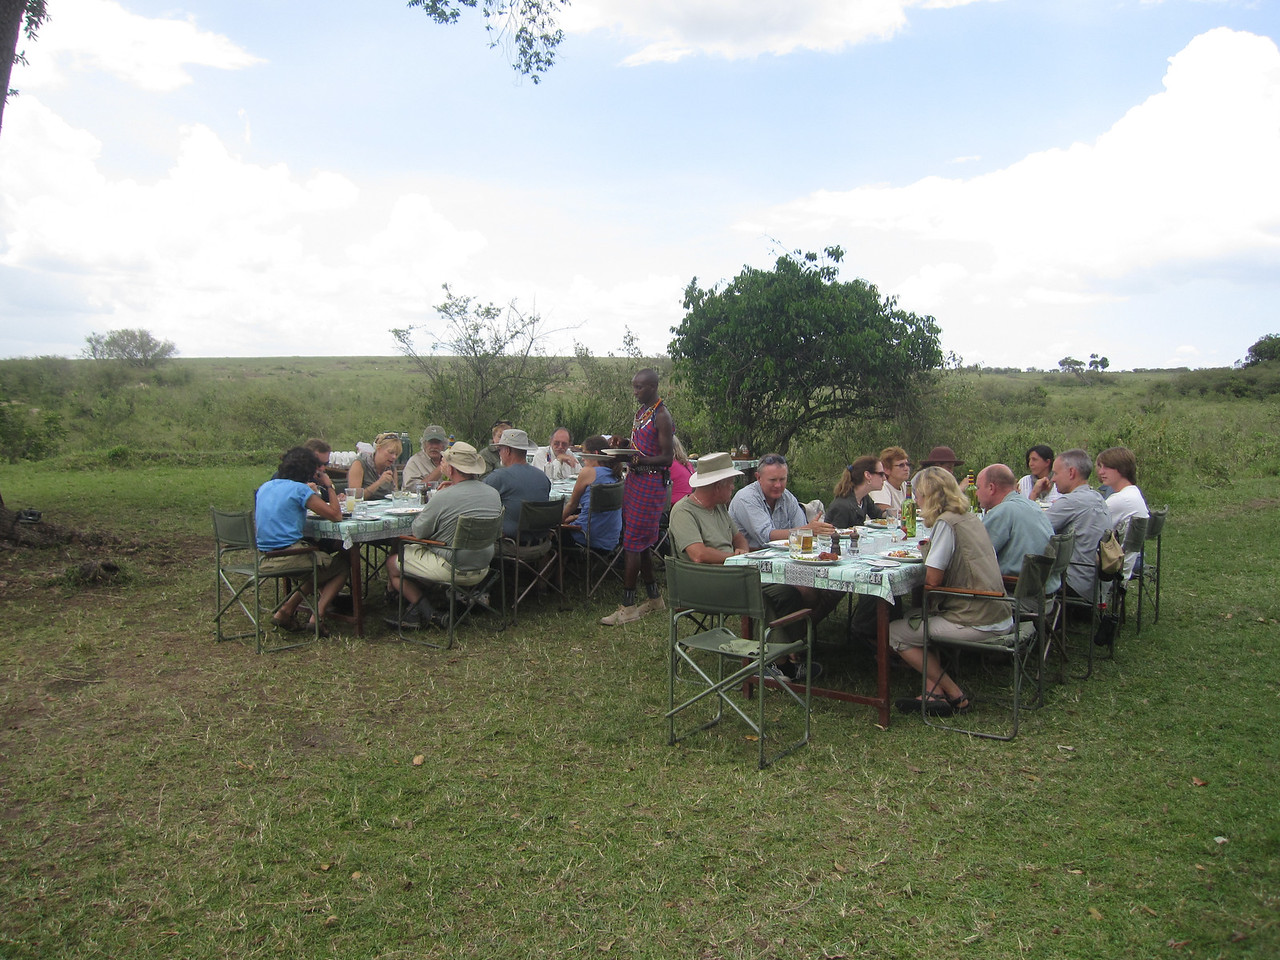 At Rekero camp, breakfast is under one tree, lunch another, and dinner is yet in a third place - so awesome.